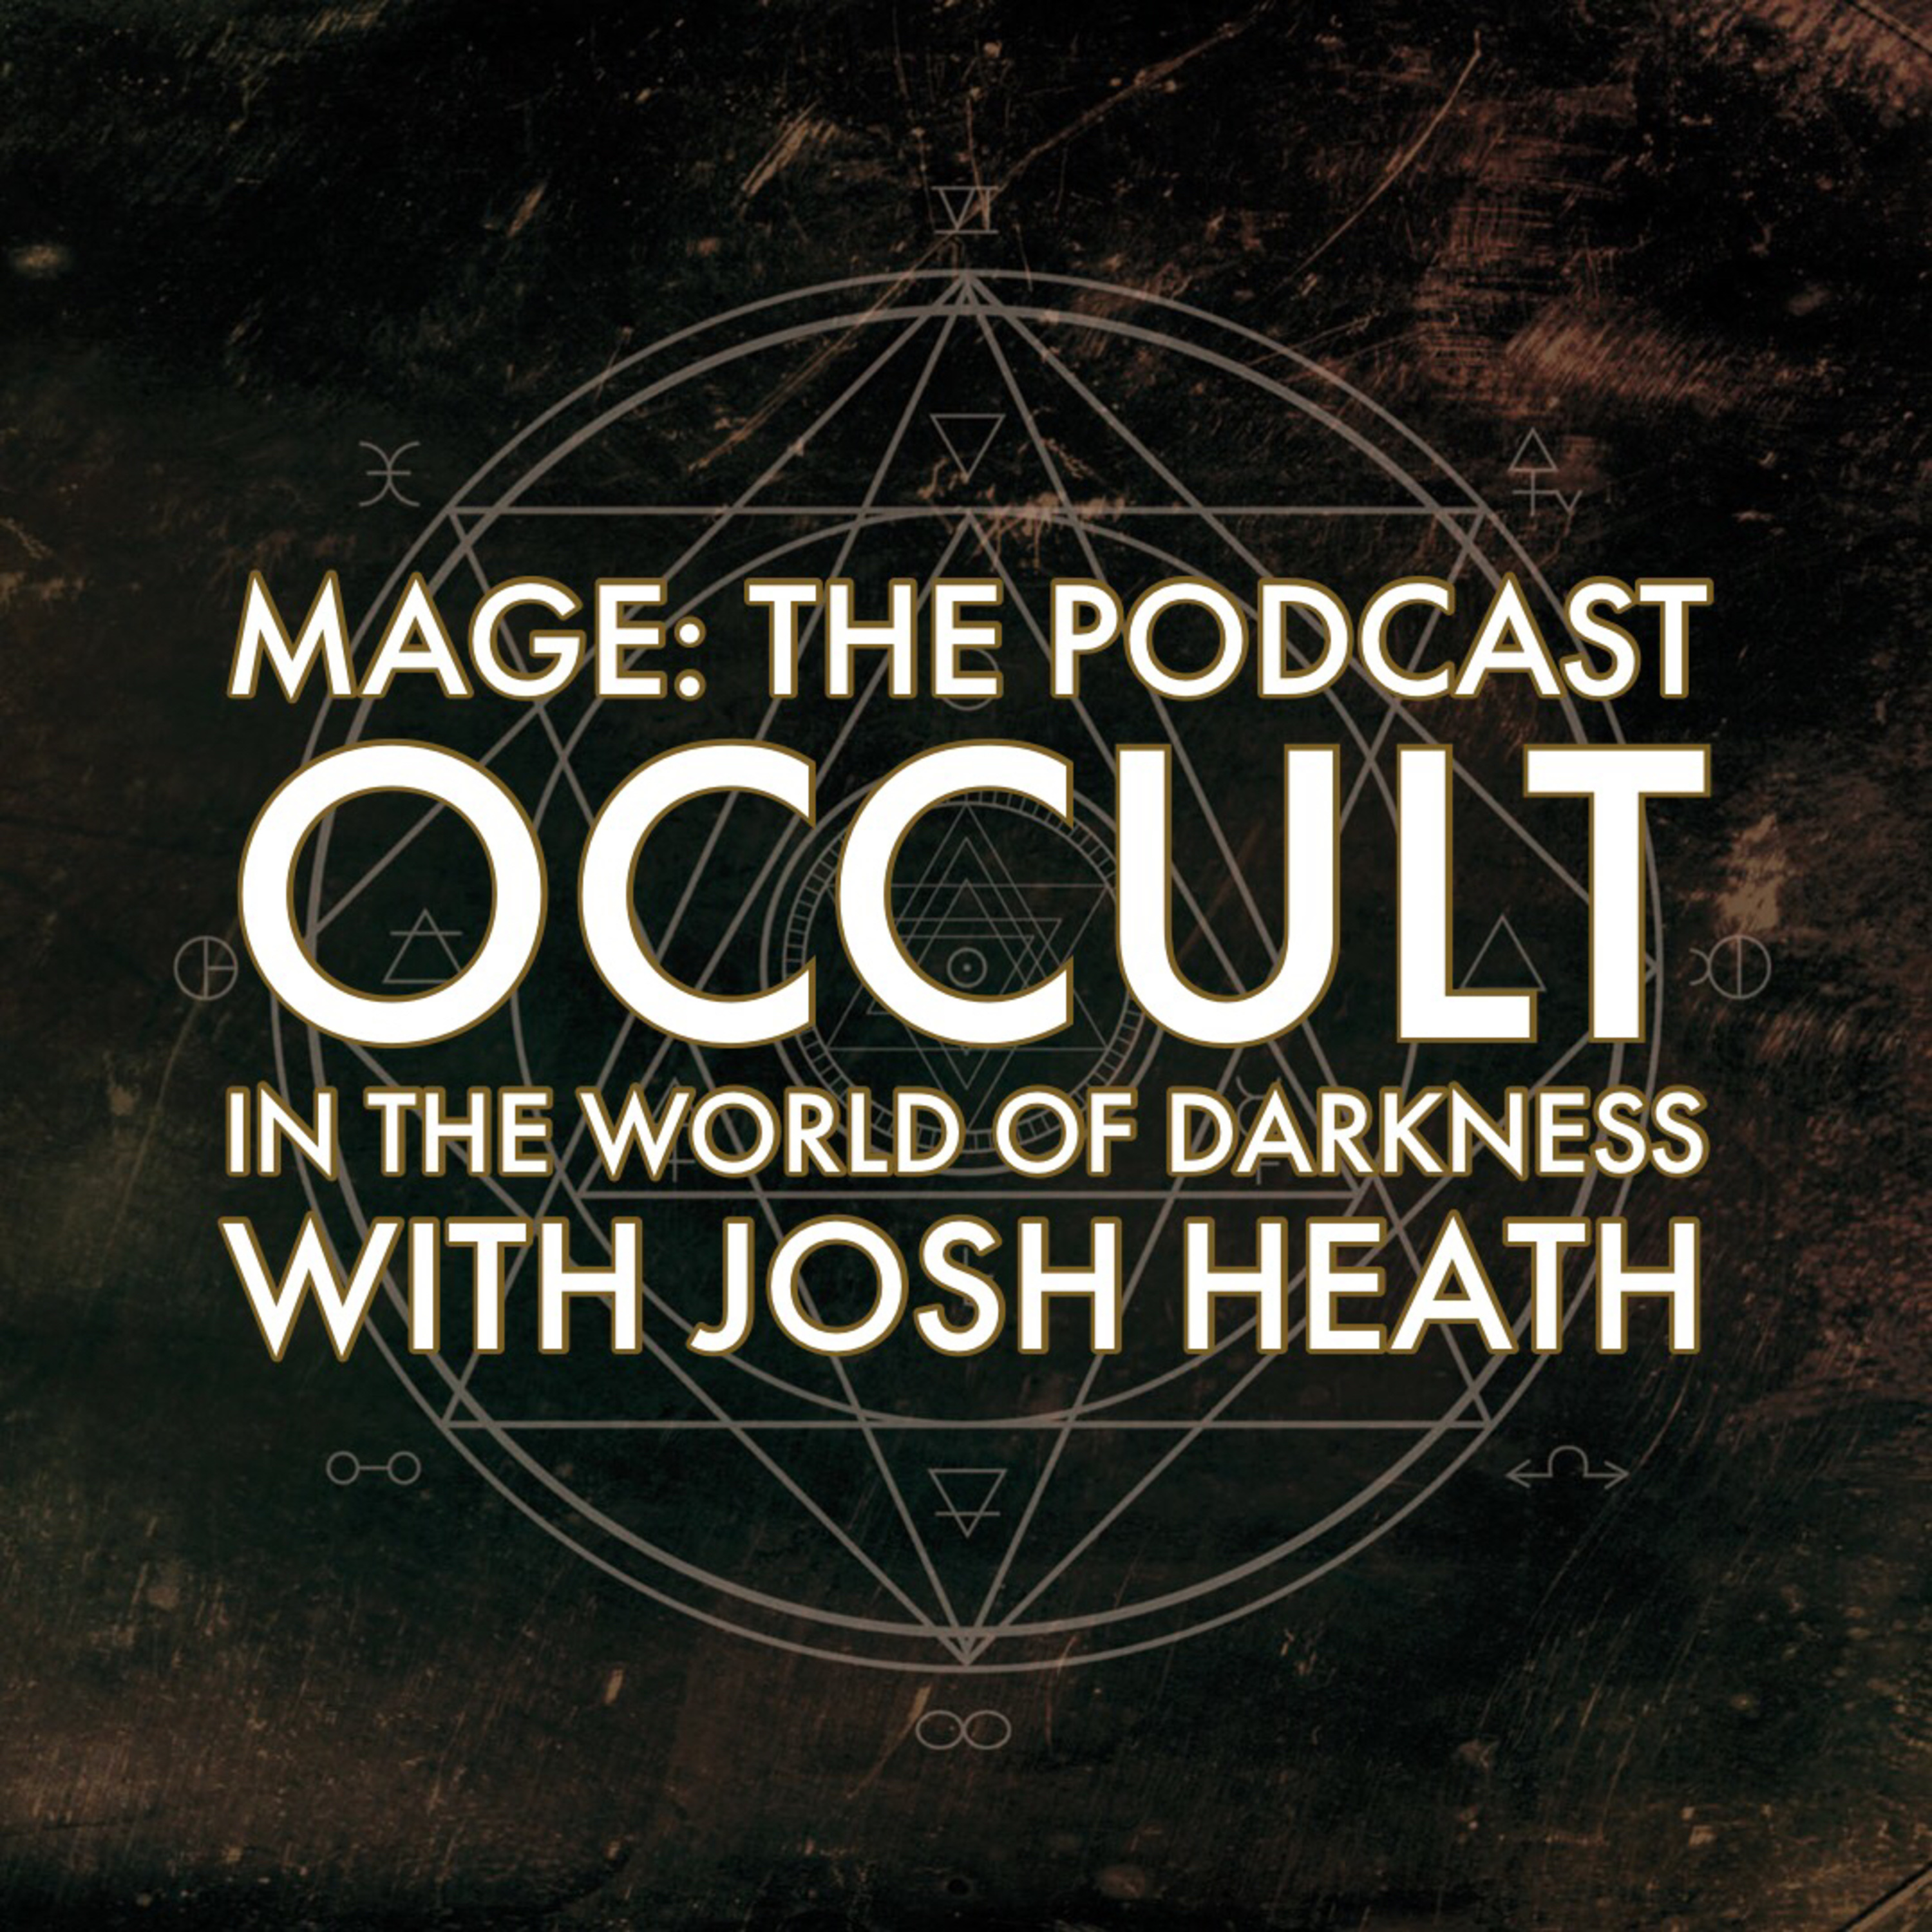 The Occult: Hidden Knowledge in the World of Darkness with